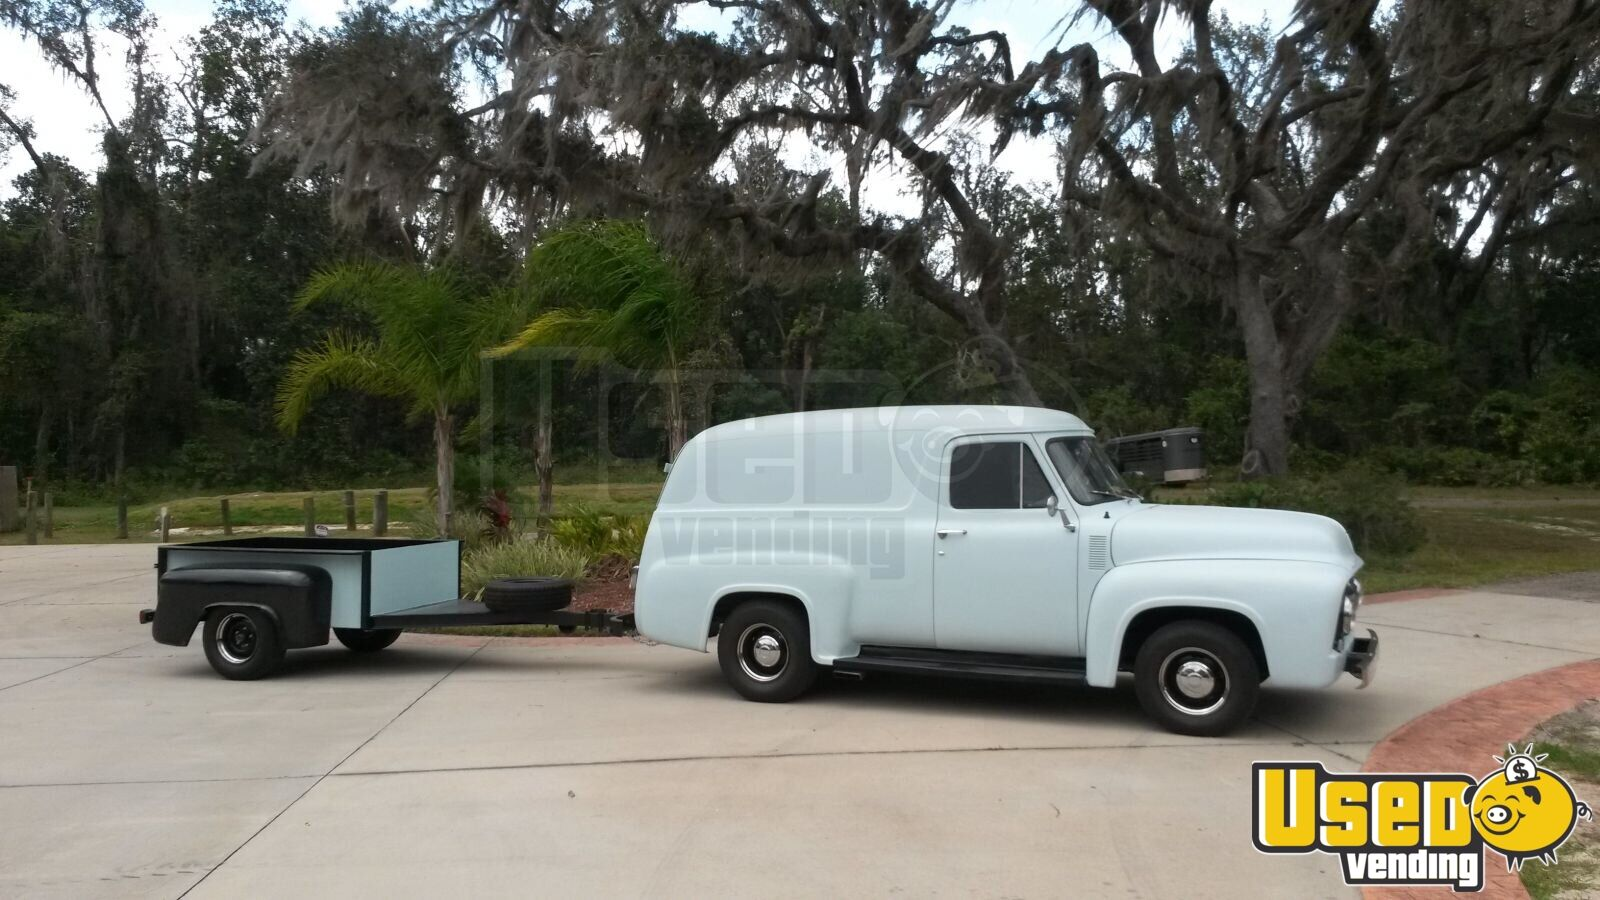 1955 Ford F 100 Panel Other Mobile Business Air Conditioning Florida for Sale - 2